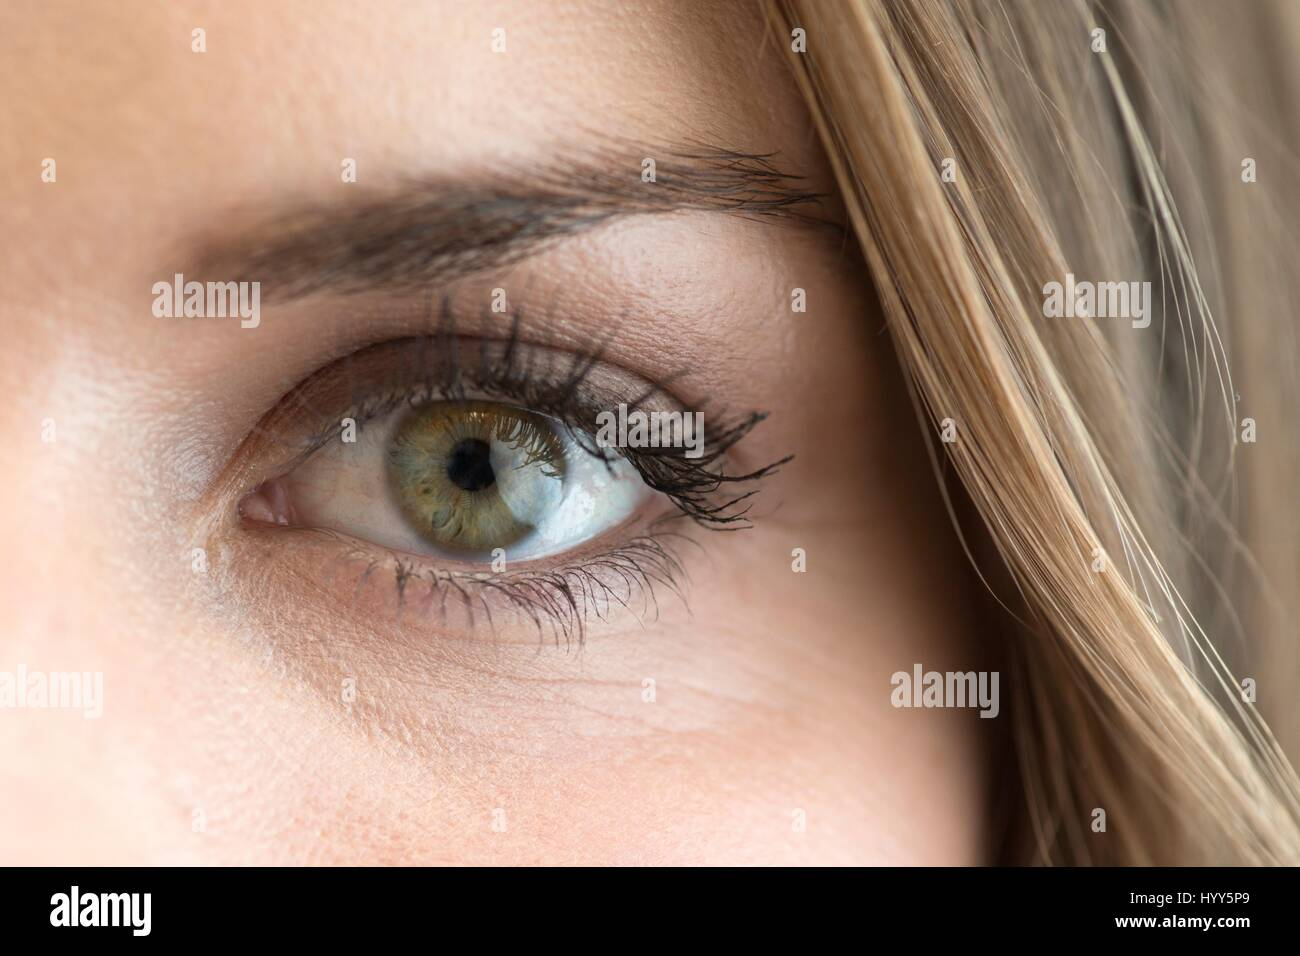 Close up of woman's eye. Banque D'Images